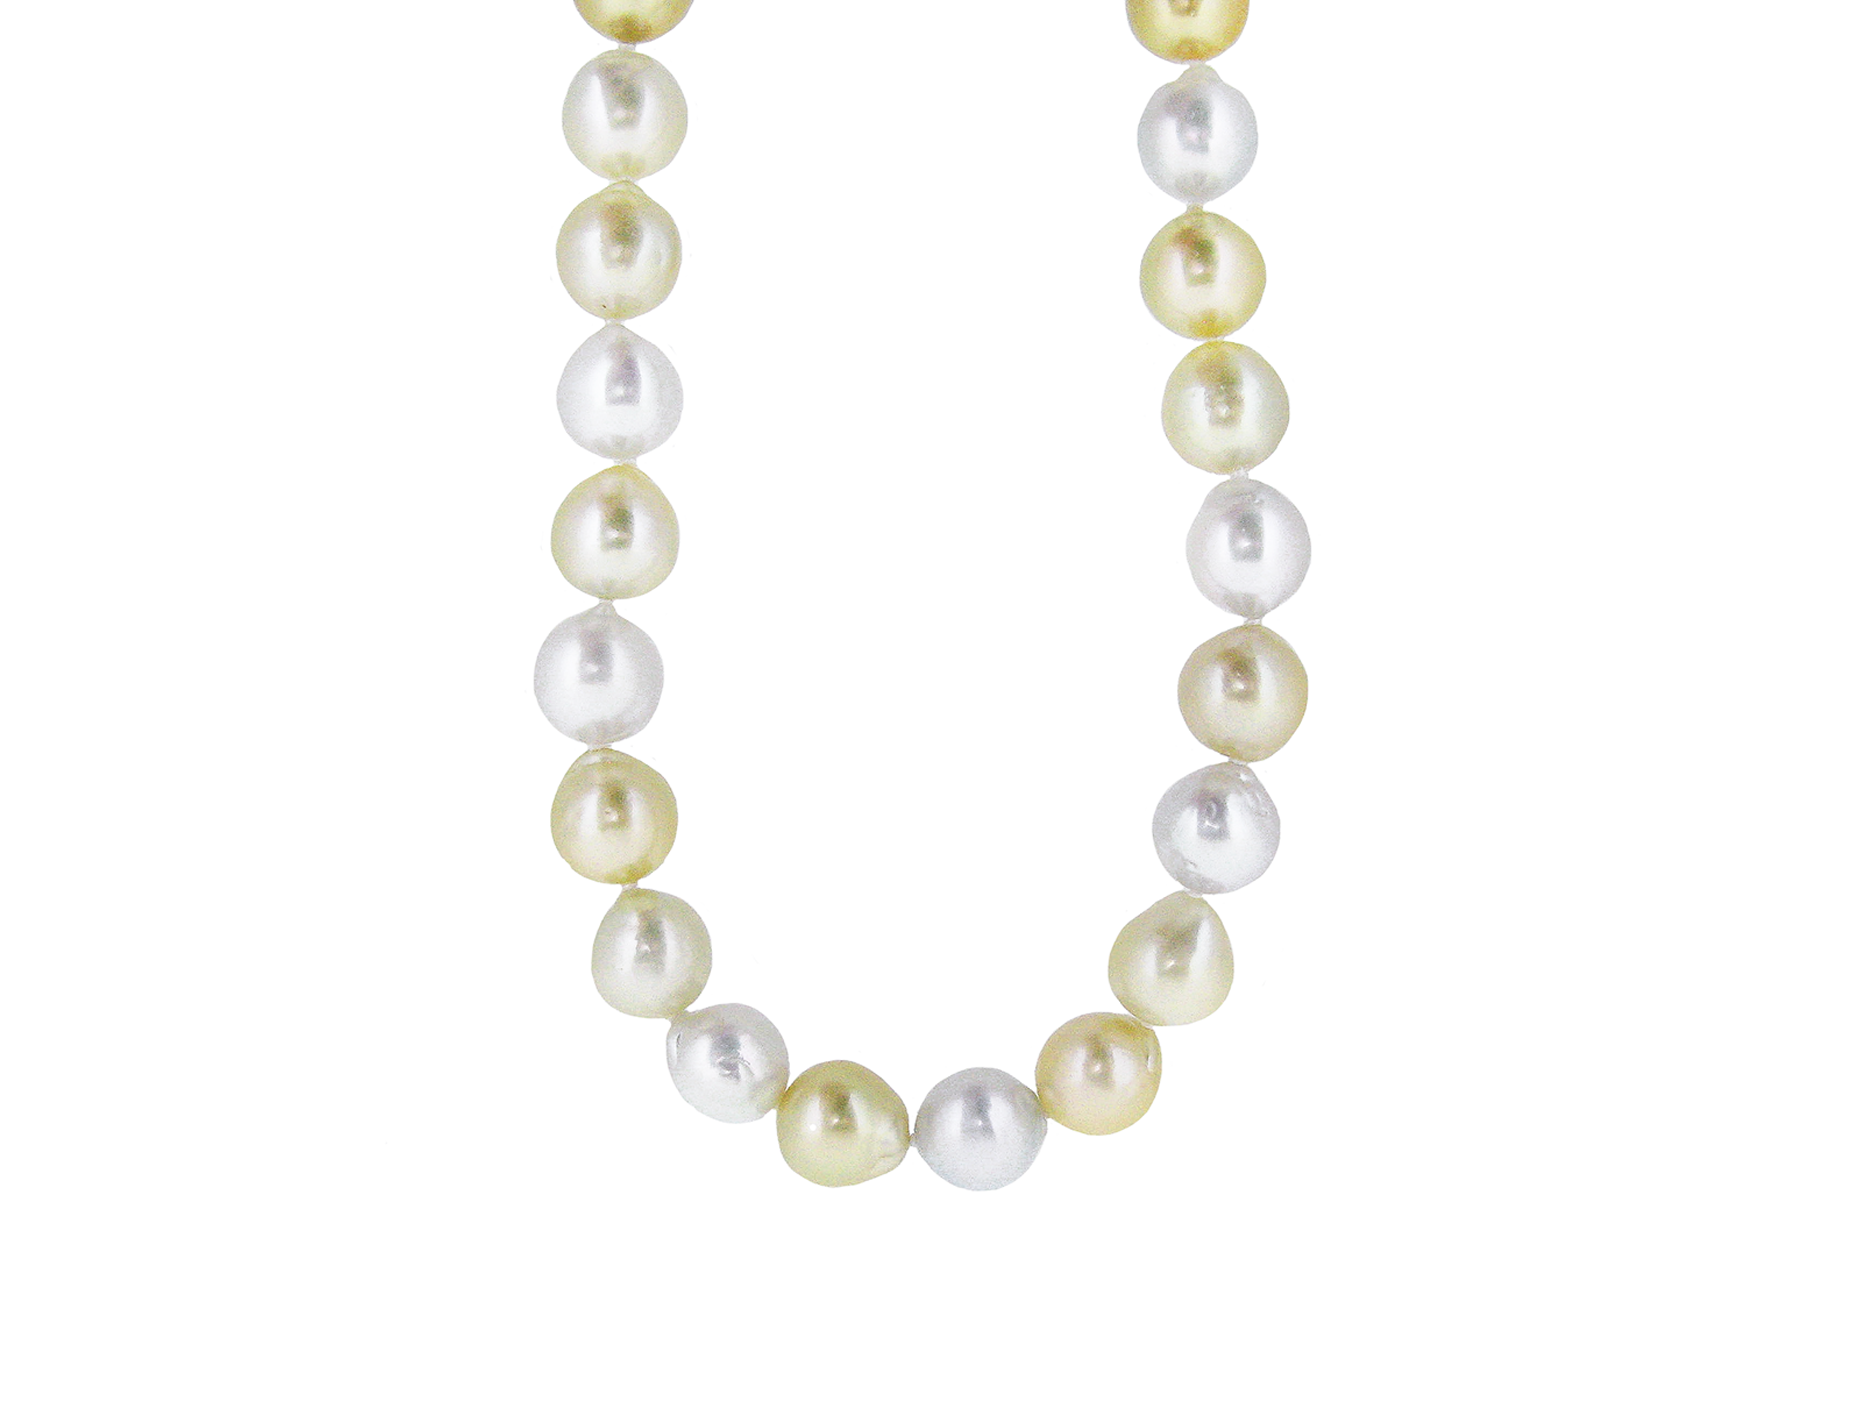 Gold And White South Sea Pearl Strand | B16320